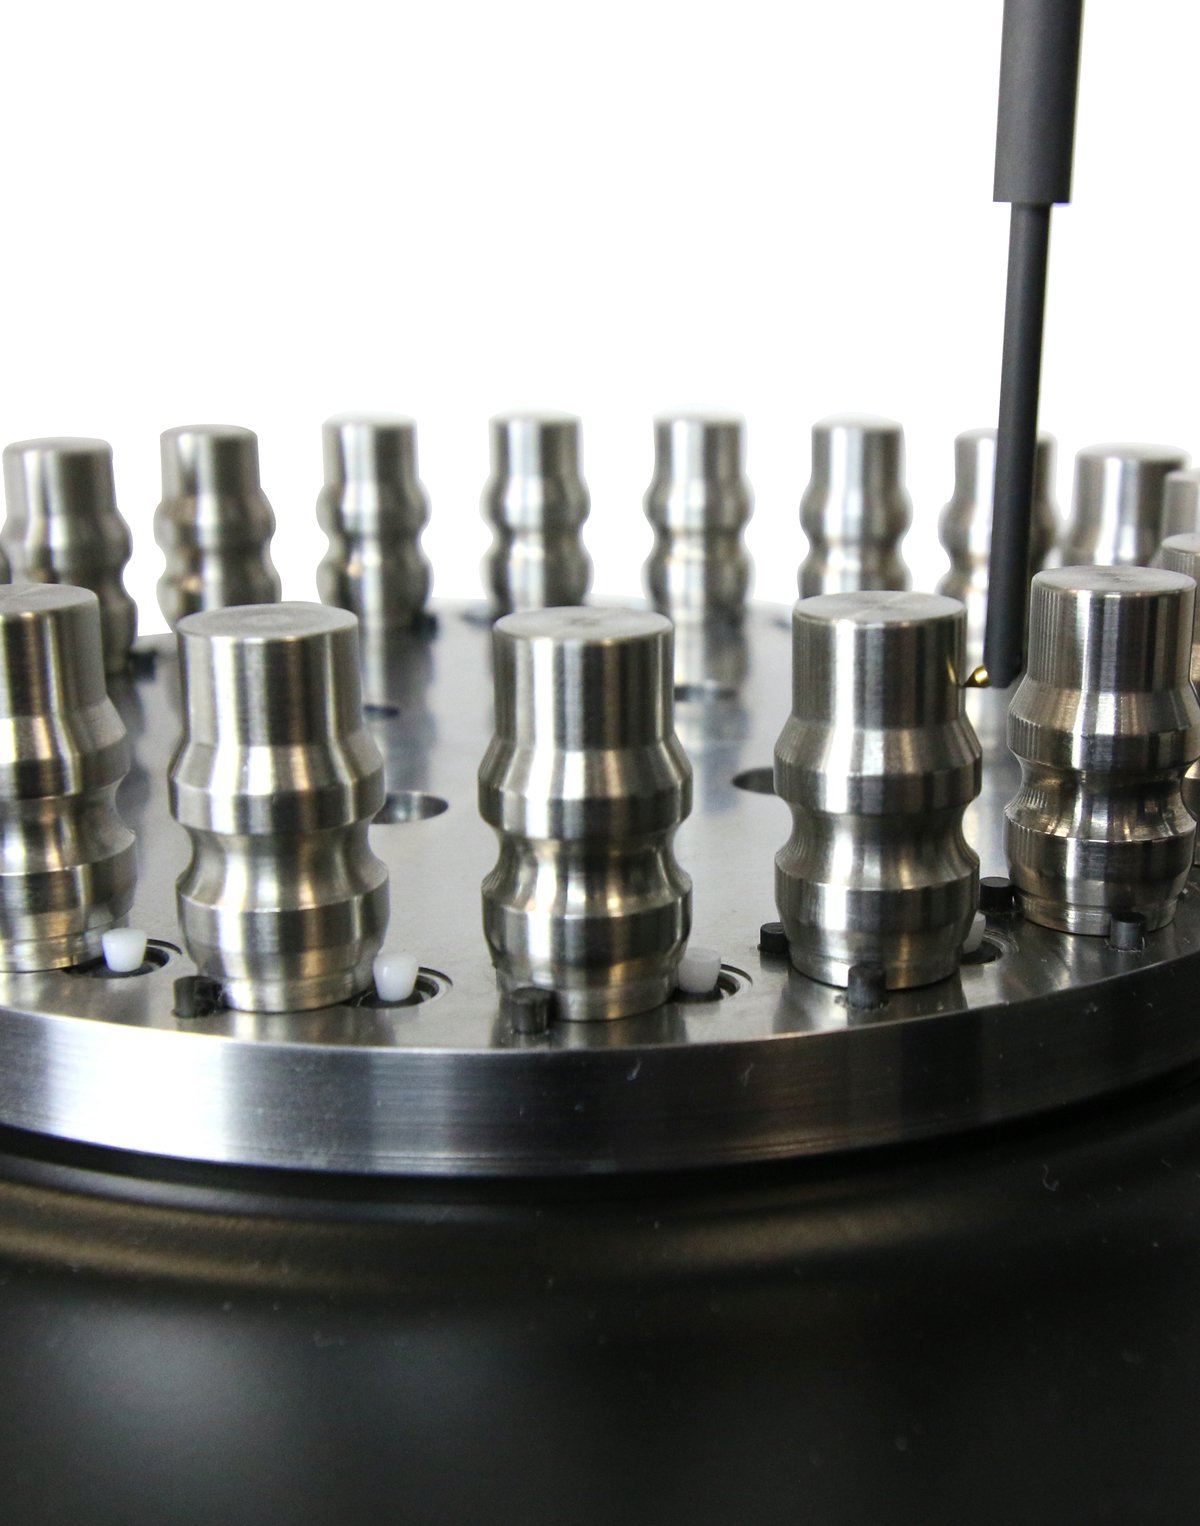 Automated multi-part measurement for harmonic analysis, Surface finish & roundness